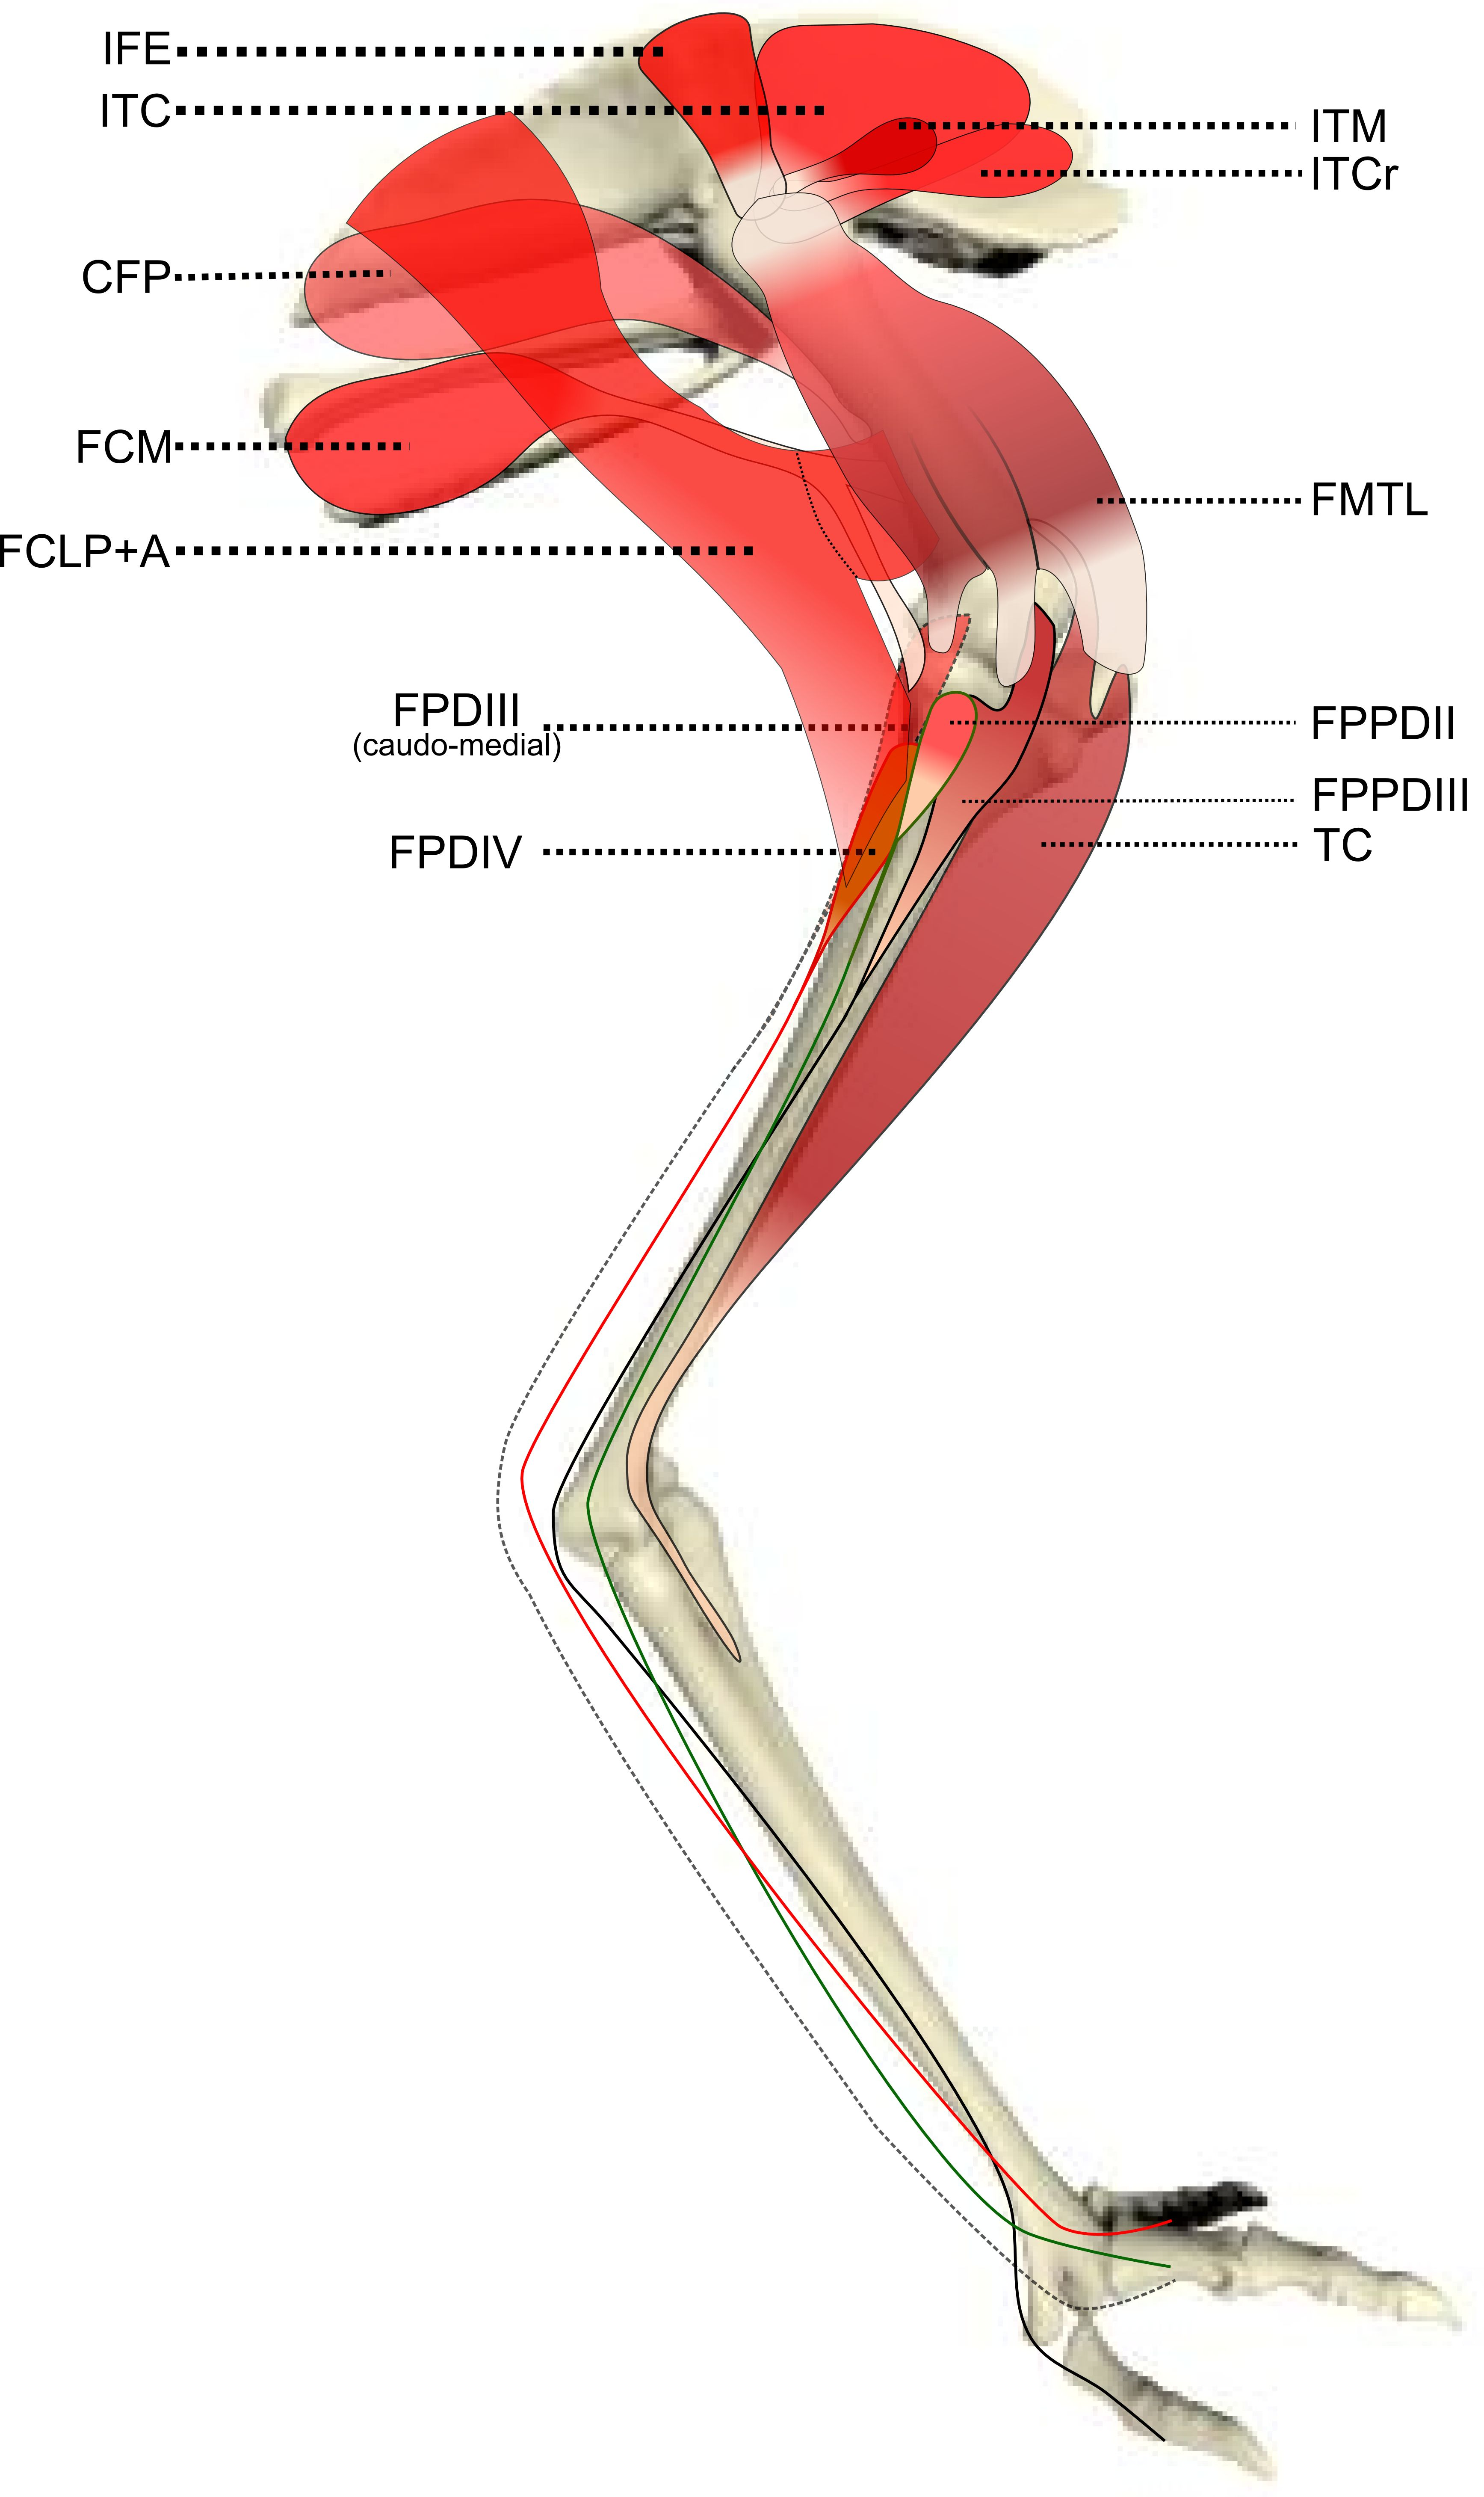 Dog Hind Leg Diagram Pourbaix Fe Mouse Muscle Anatomy See More About